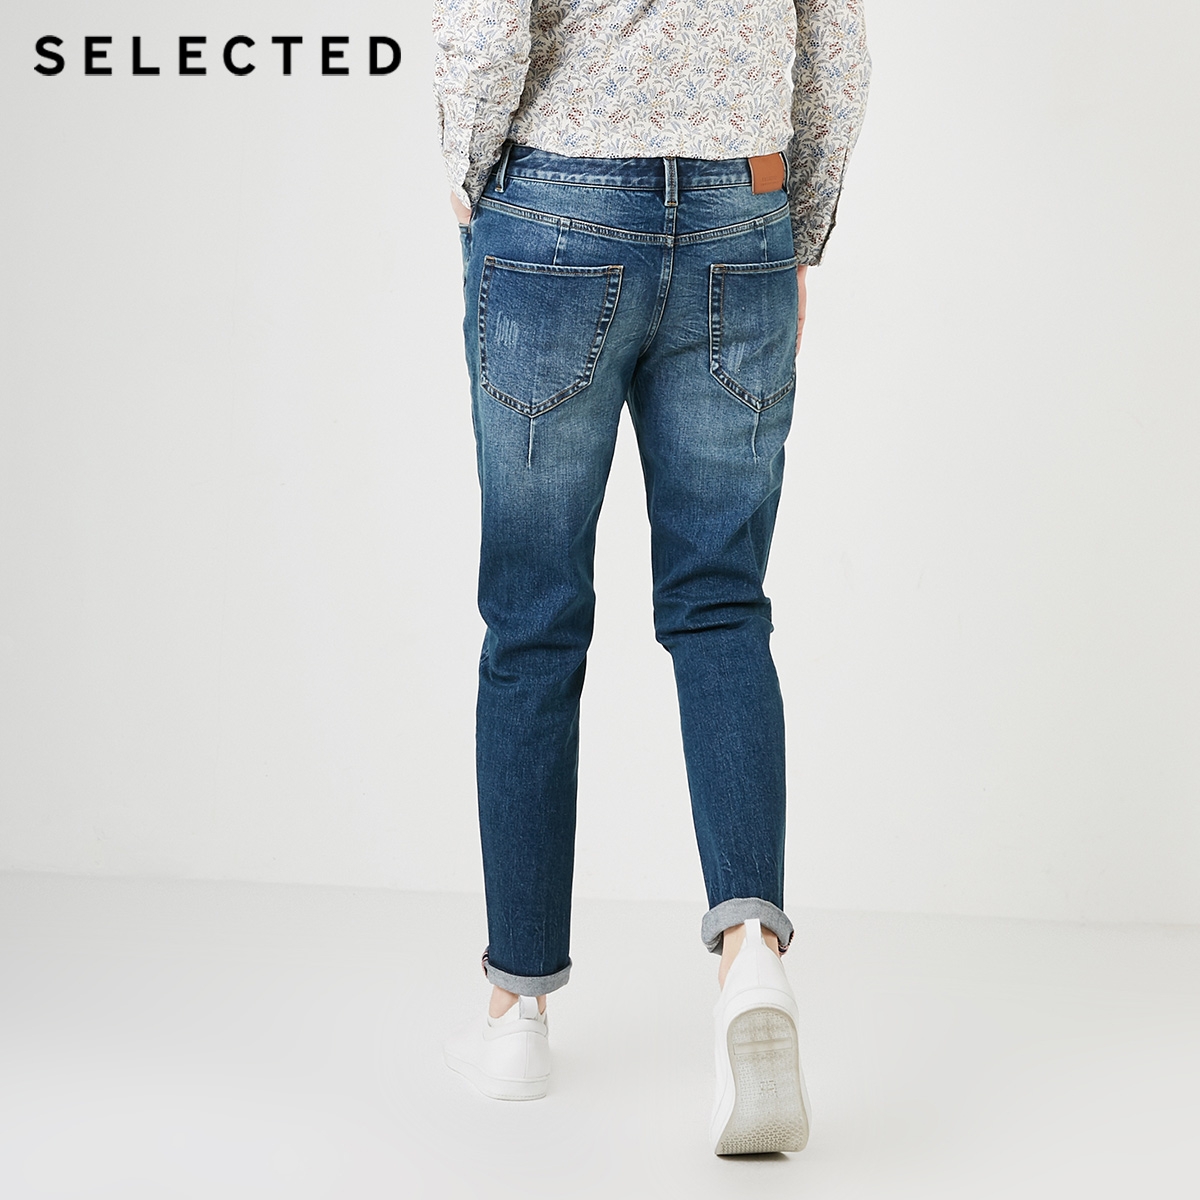 Image 3 - SELECTED Mens Summer Lycra blend Denim Pants Fading Tight leg Jeans C419132535Jeans